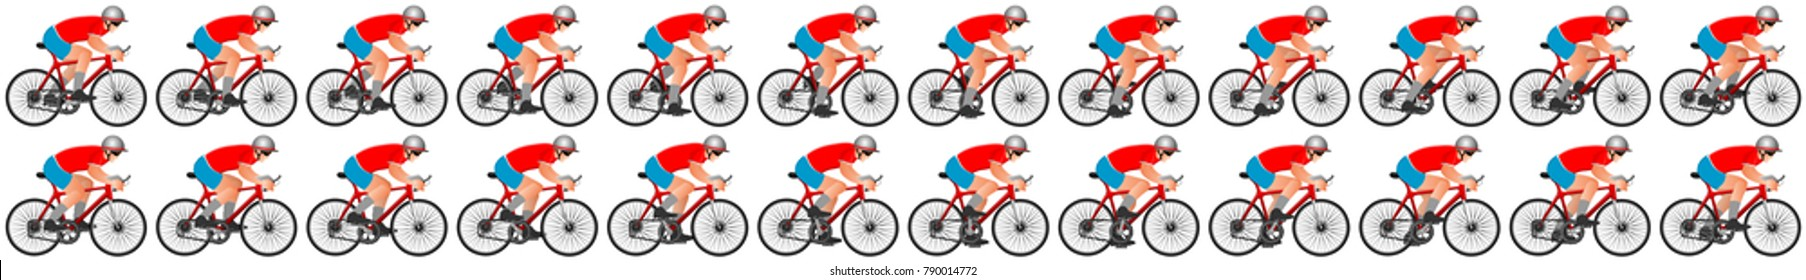 Cycle riding animation sprite sheet